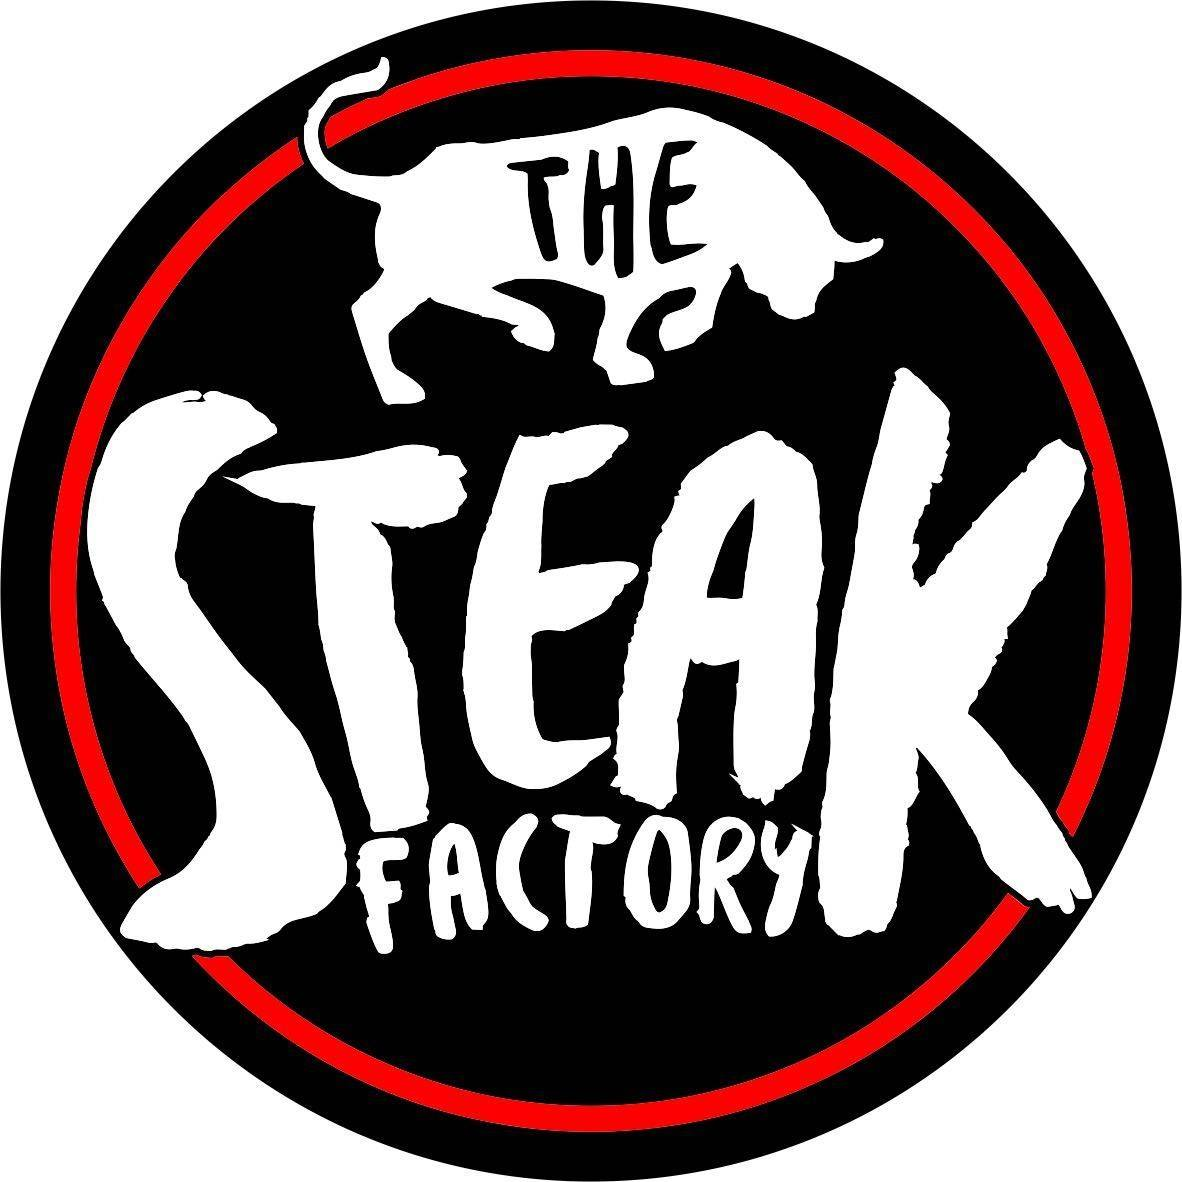 The Steak Factory - Shopping Ibirapuera Guia BaresSP